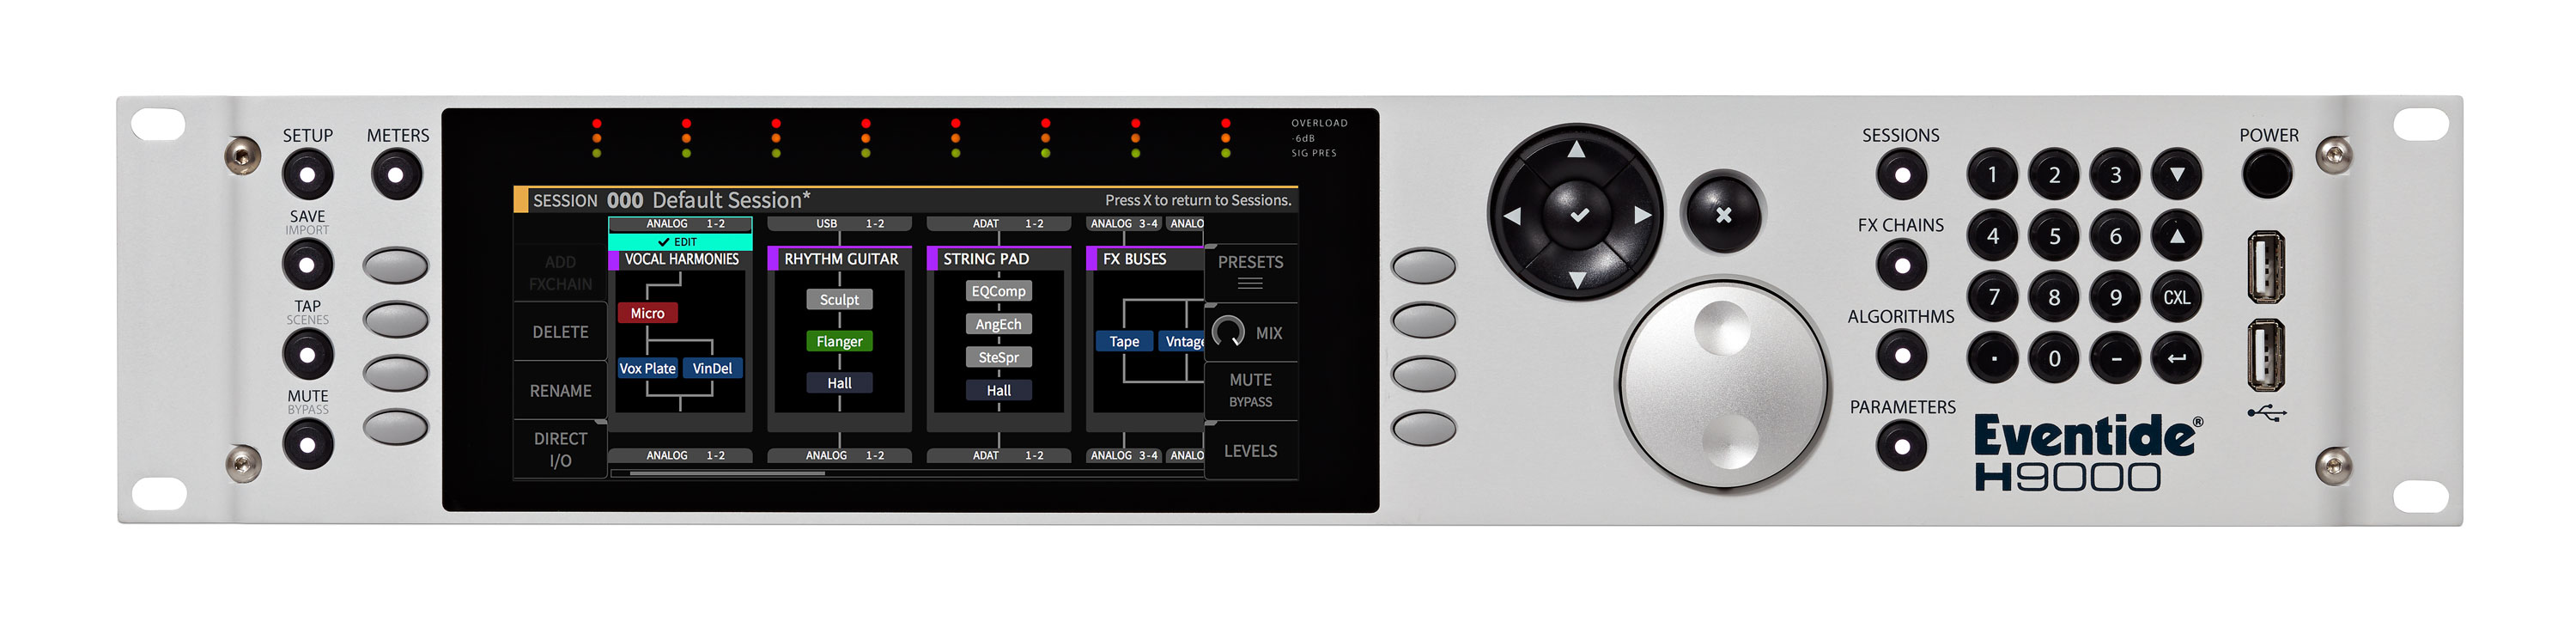 Eventide H9000 Harmonizer Network-ready Multi FX, Multi Channel, Effects Processor